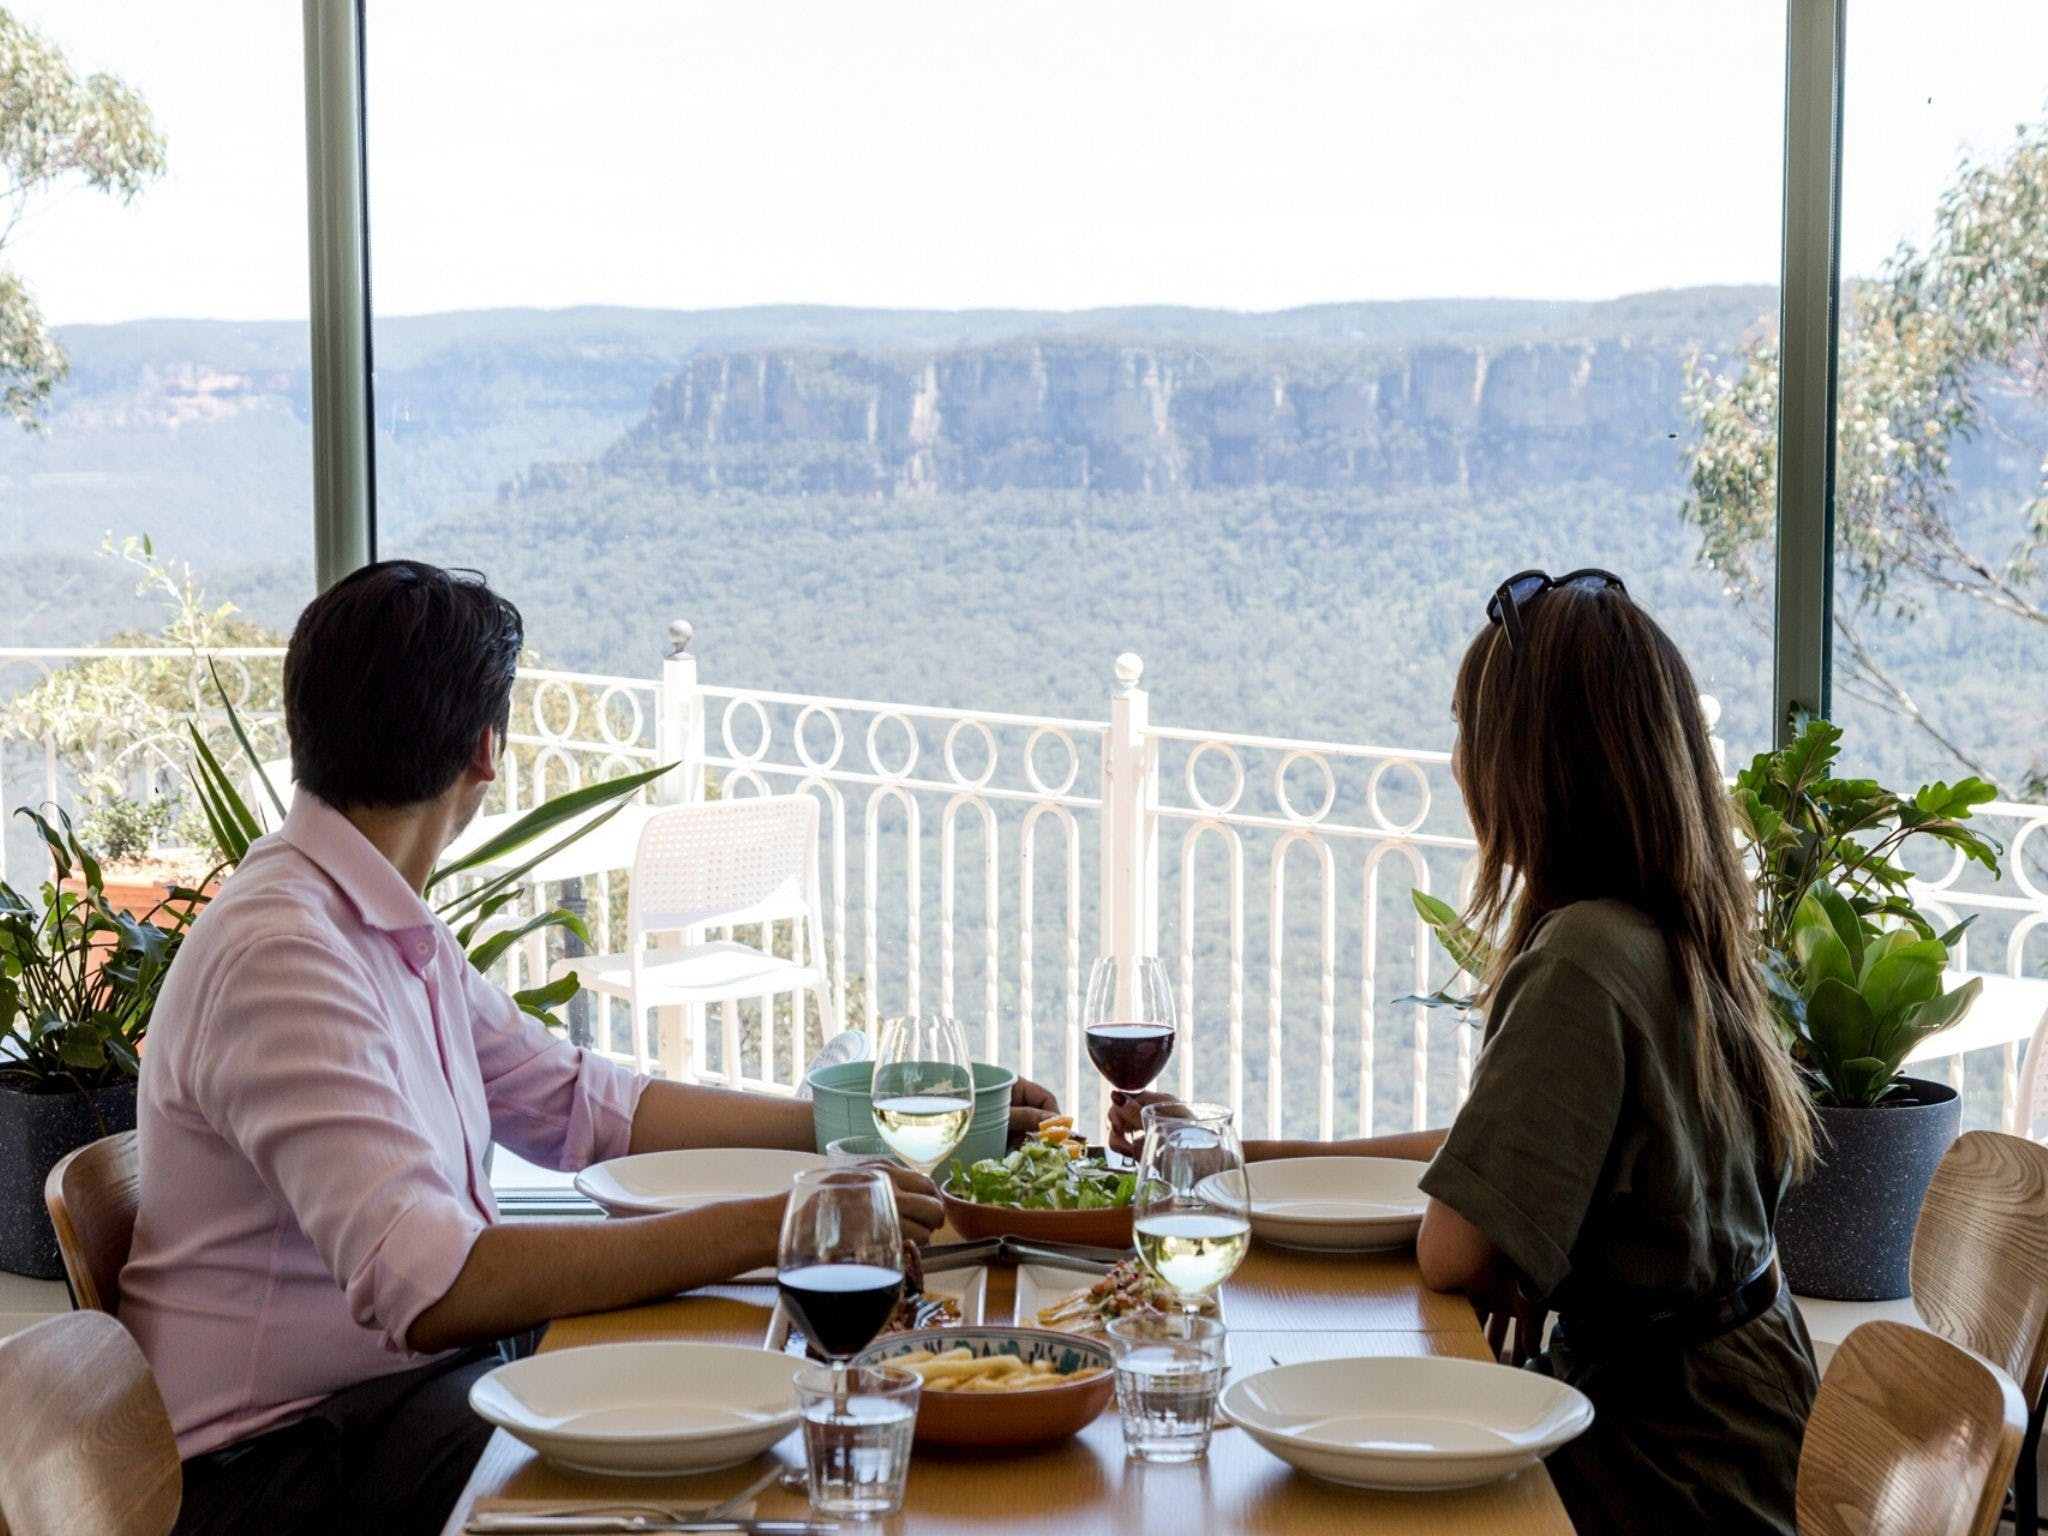 Christmas Day Lunch at The Lookout Echo Point - Hotel Accommodation